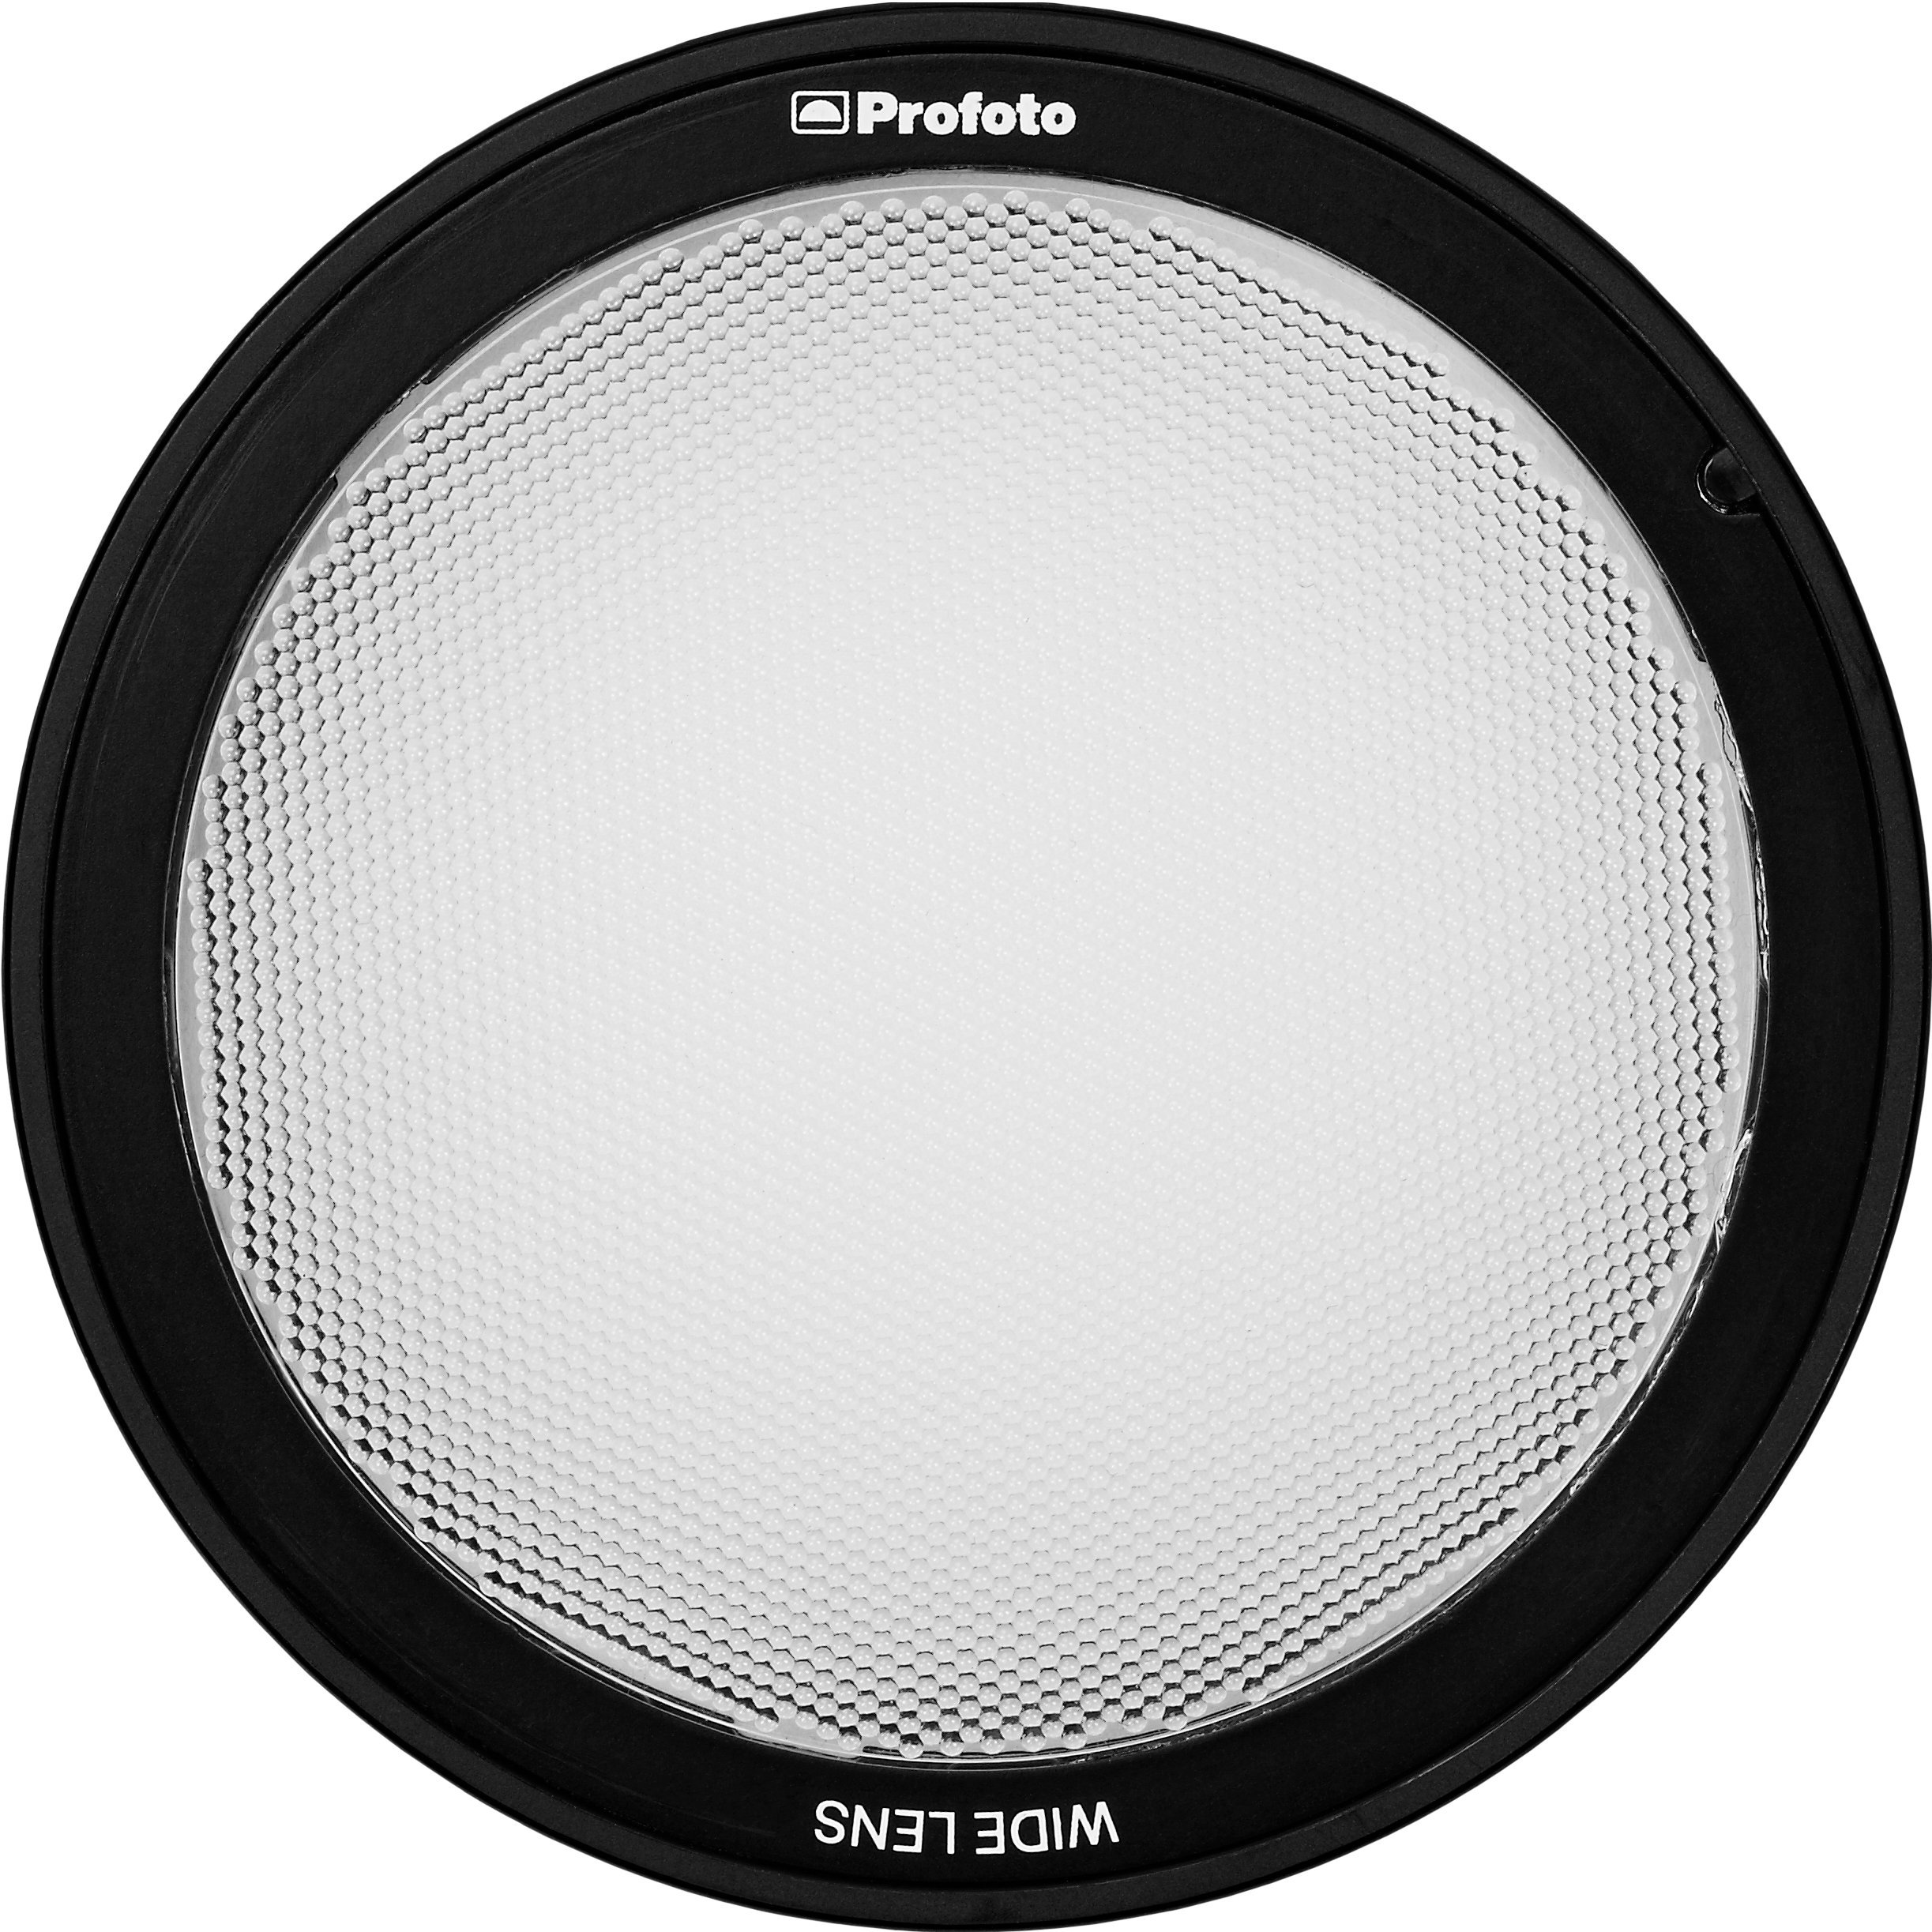 Profoto Wide Lens for A1 AirTTL On-Camera Flash by Profoto